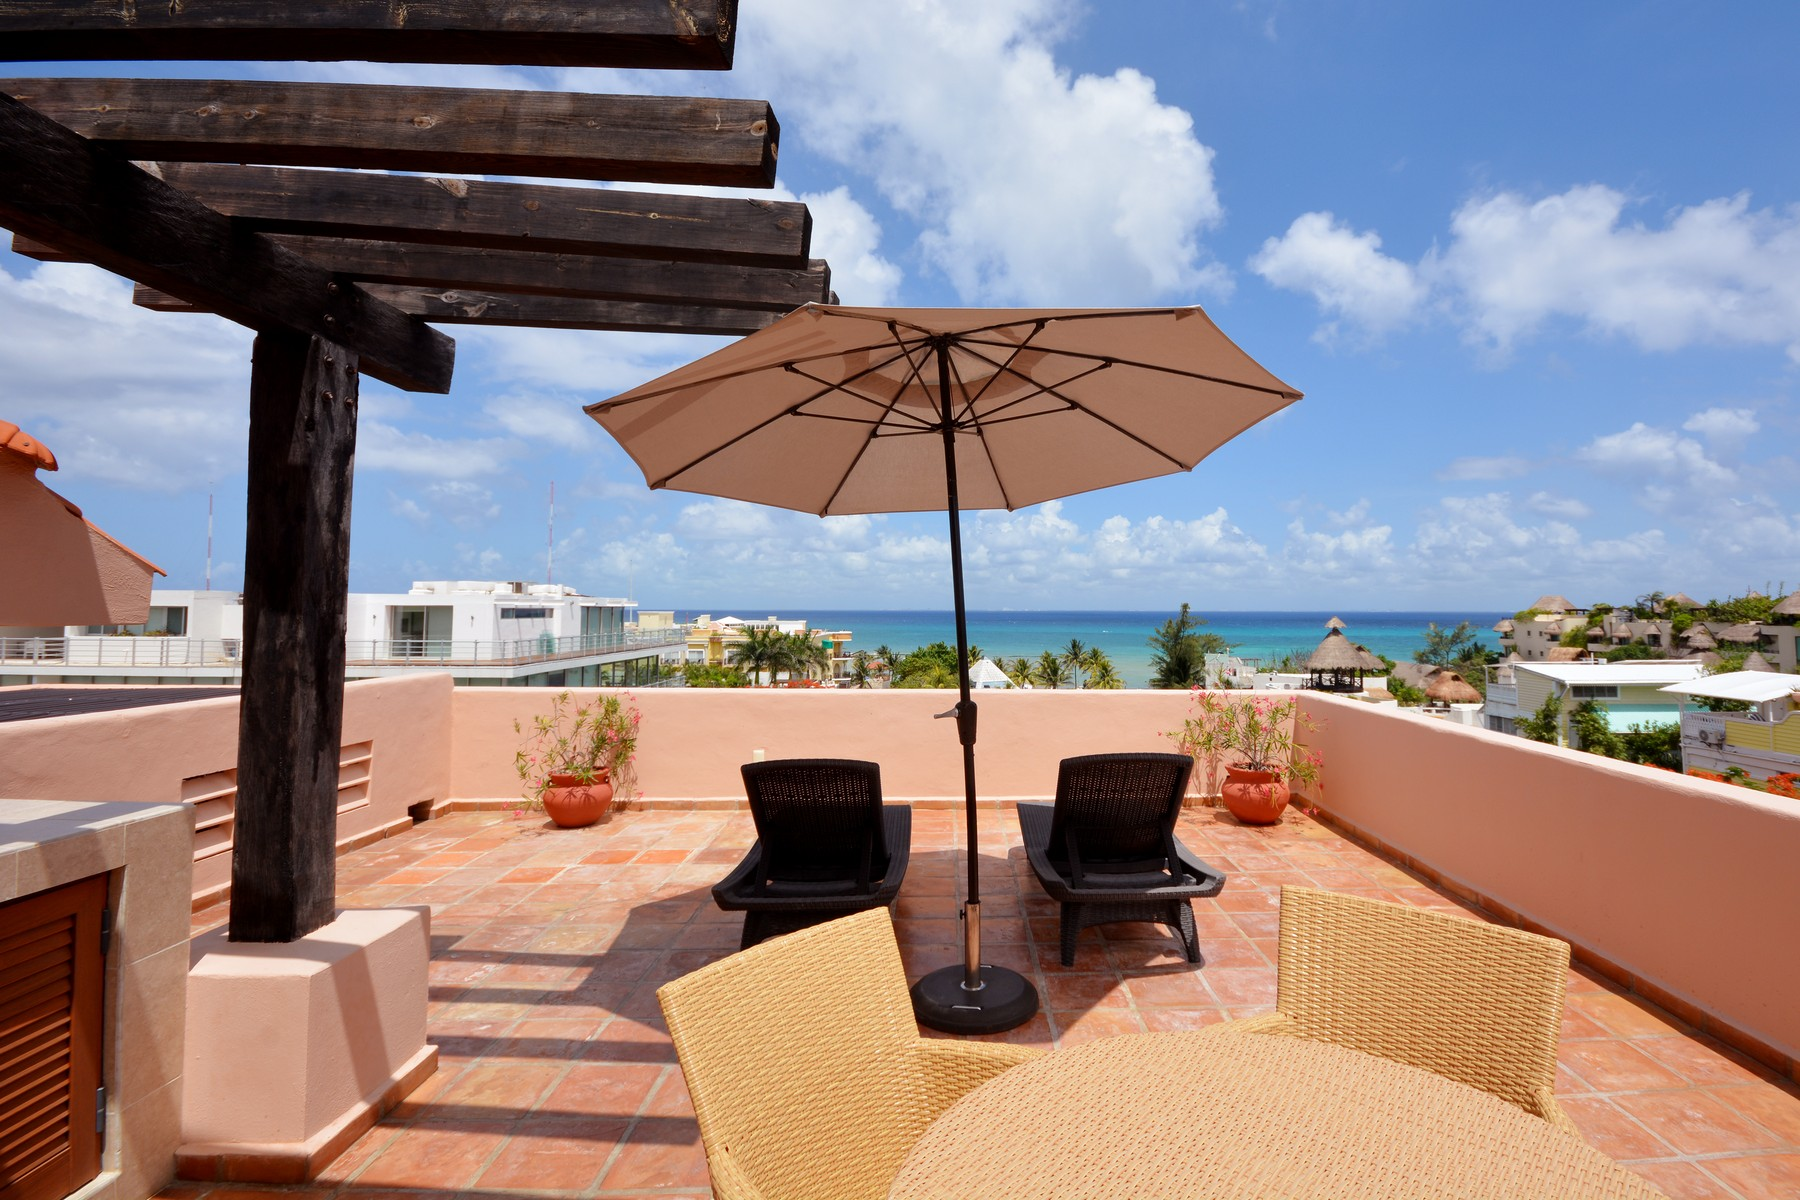 Condominium for Sale at DELUXE PENTHOUSE IN THE BEST LOCATION Deluxe penthouse in the best location Calle 16 Norte Bis entre 5a Ave y 1a Ave Playa Del Carmen, Quintana Roo 77710 Mexico